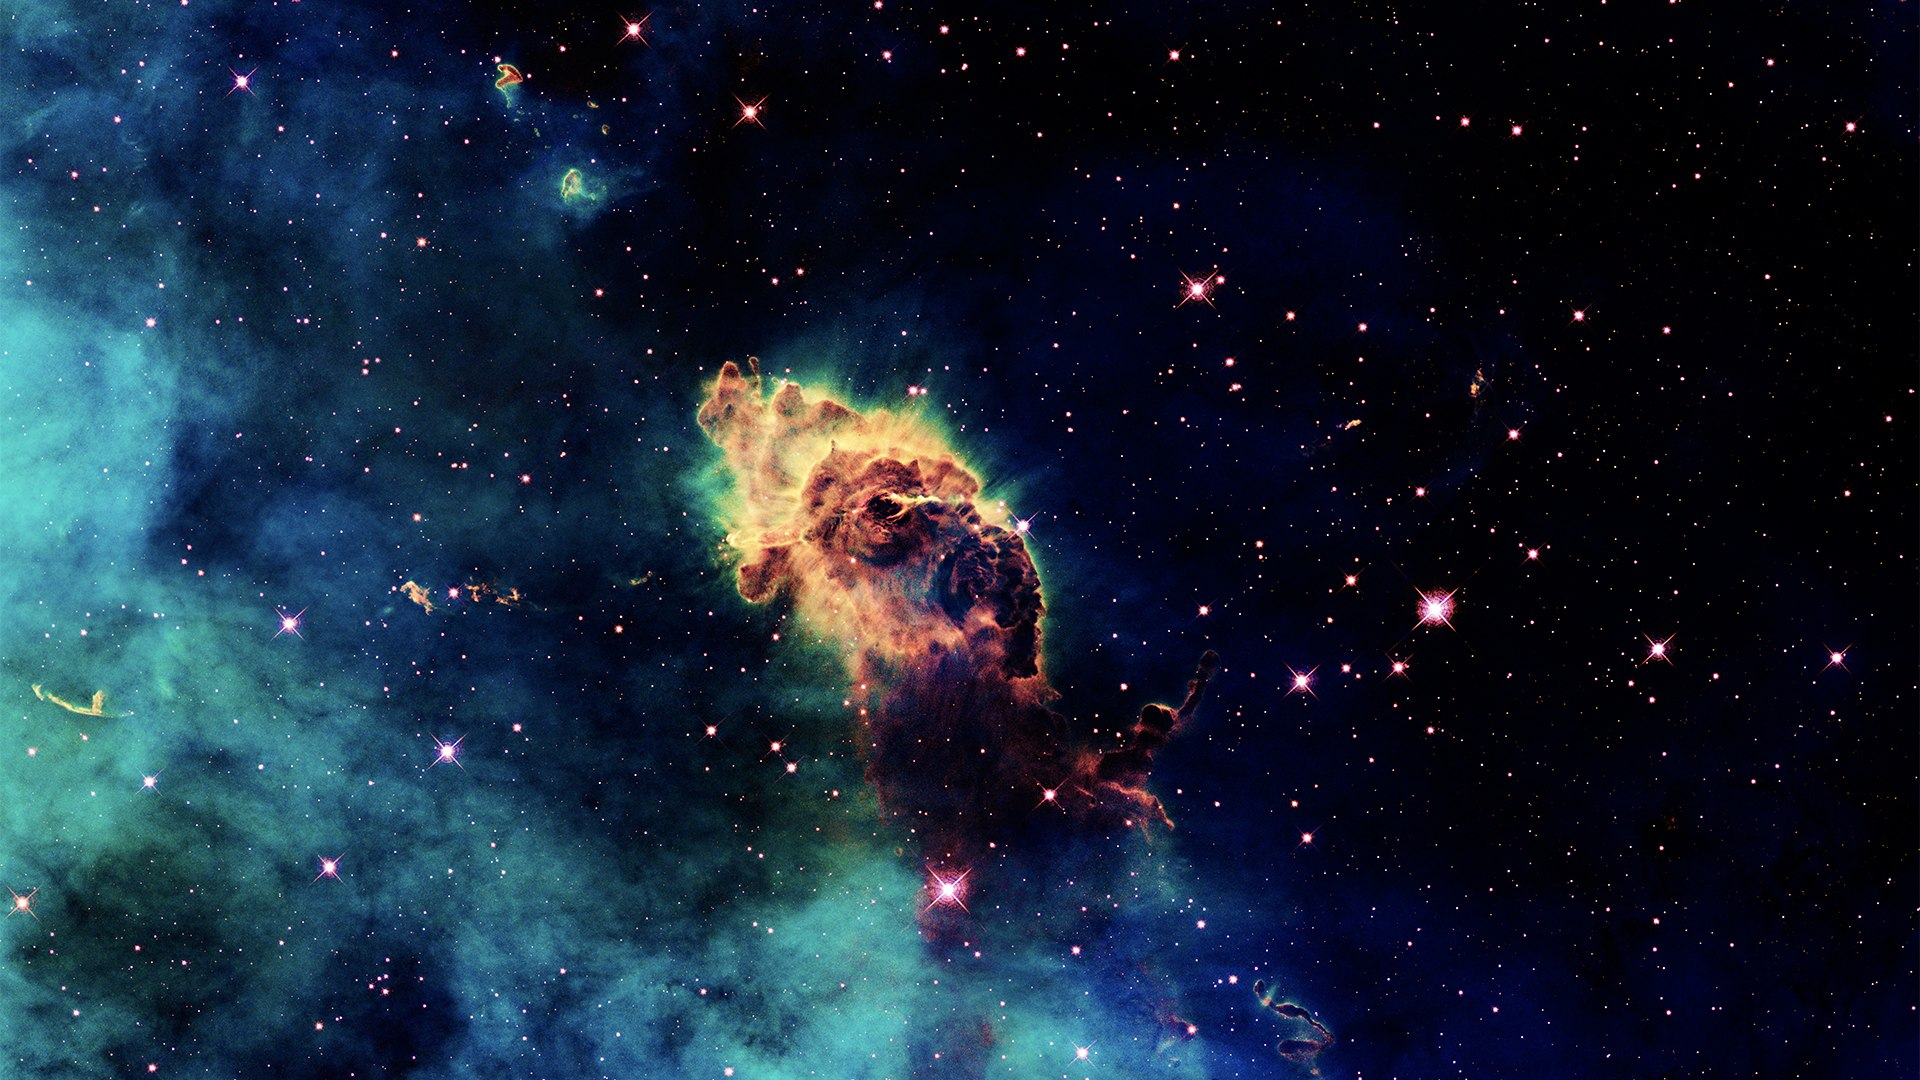 space wallpapers for desktop - photo #15